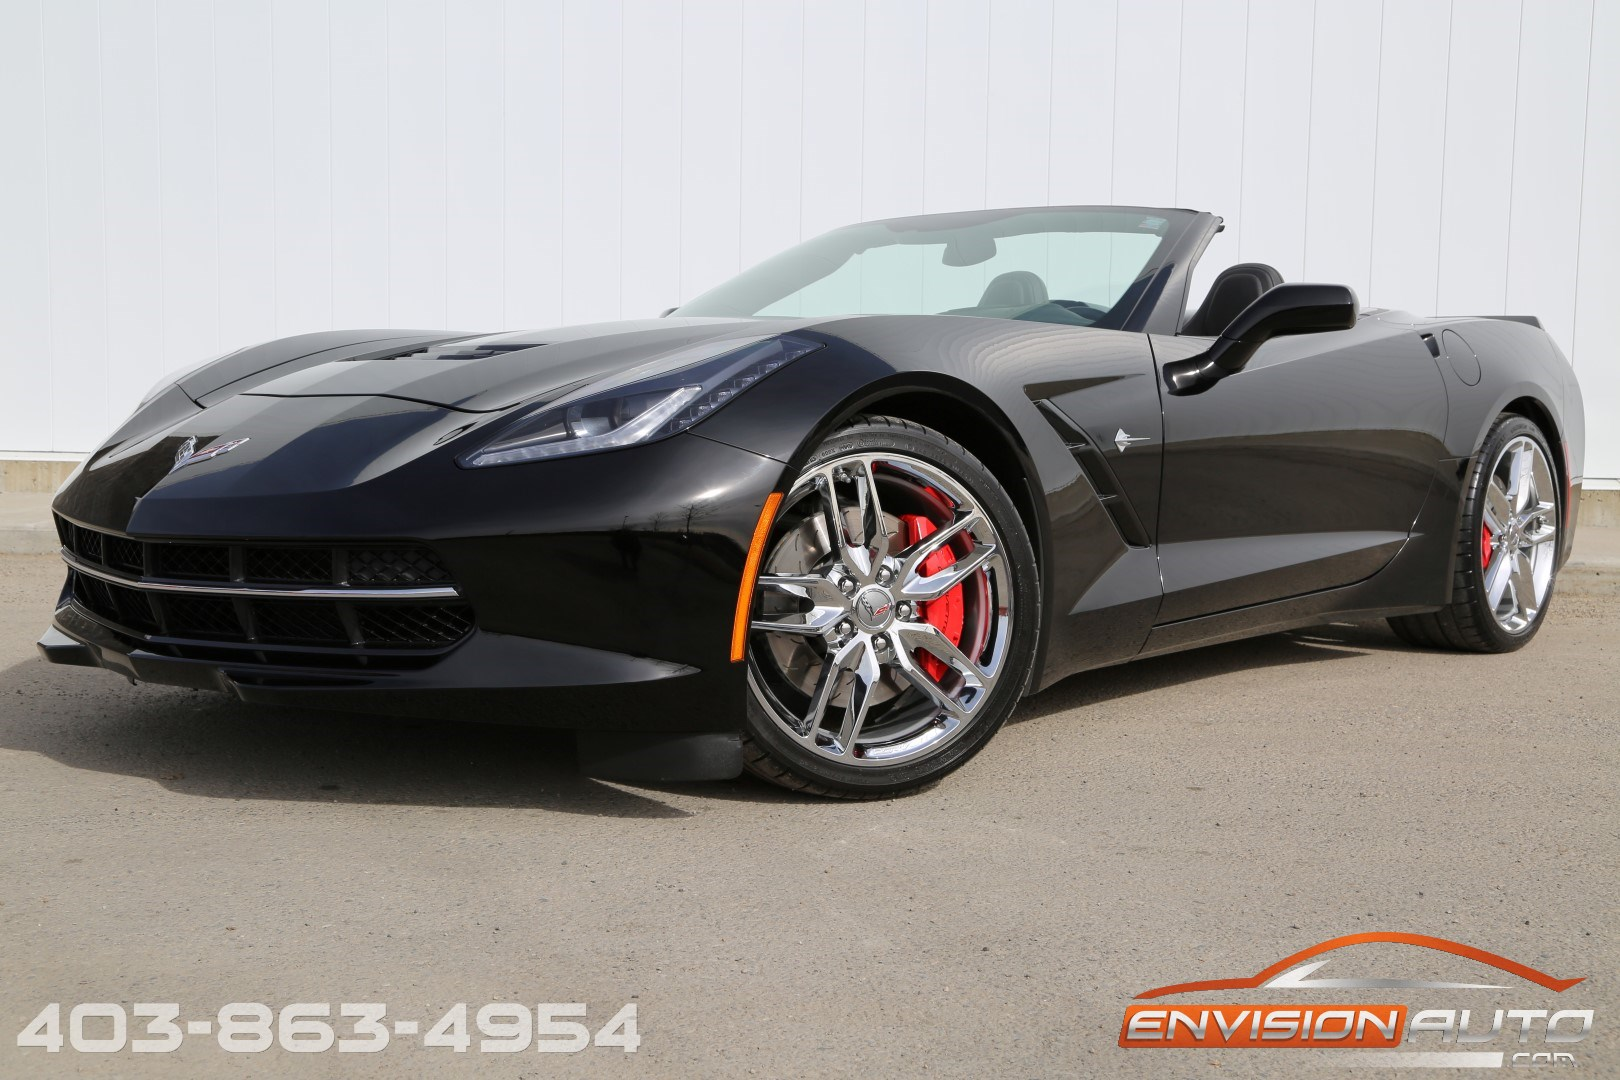 2015 chevrolet corvette stingray convertible 3lt z51 envision auto. Black Bedroom Furniture Sets. Home Design Ideas